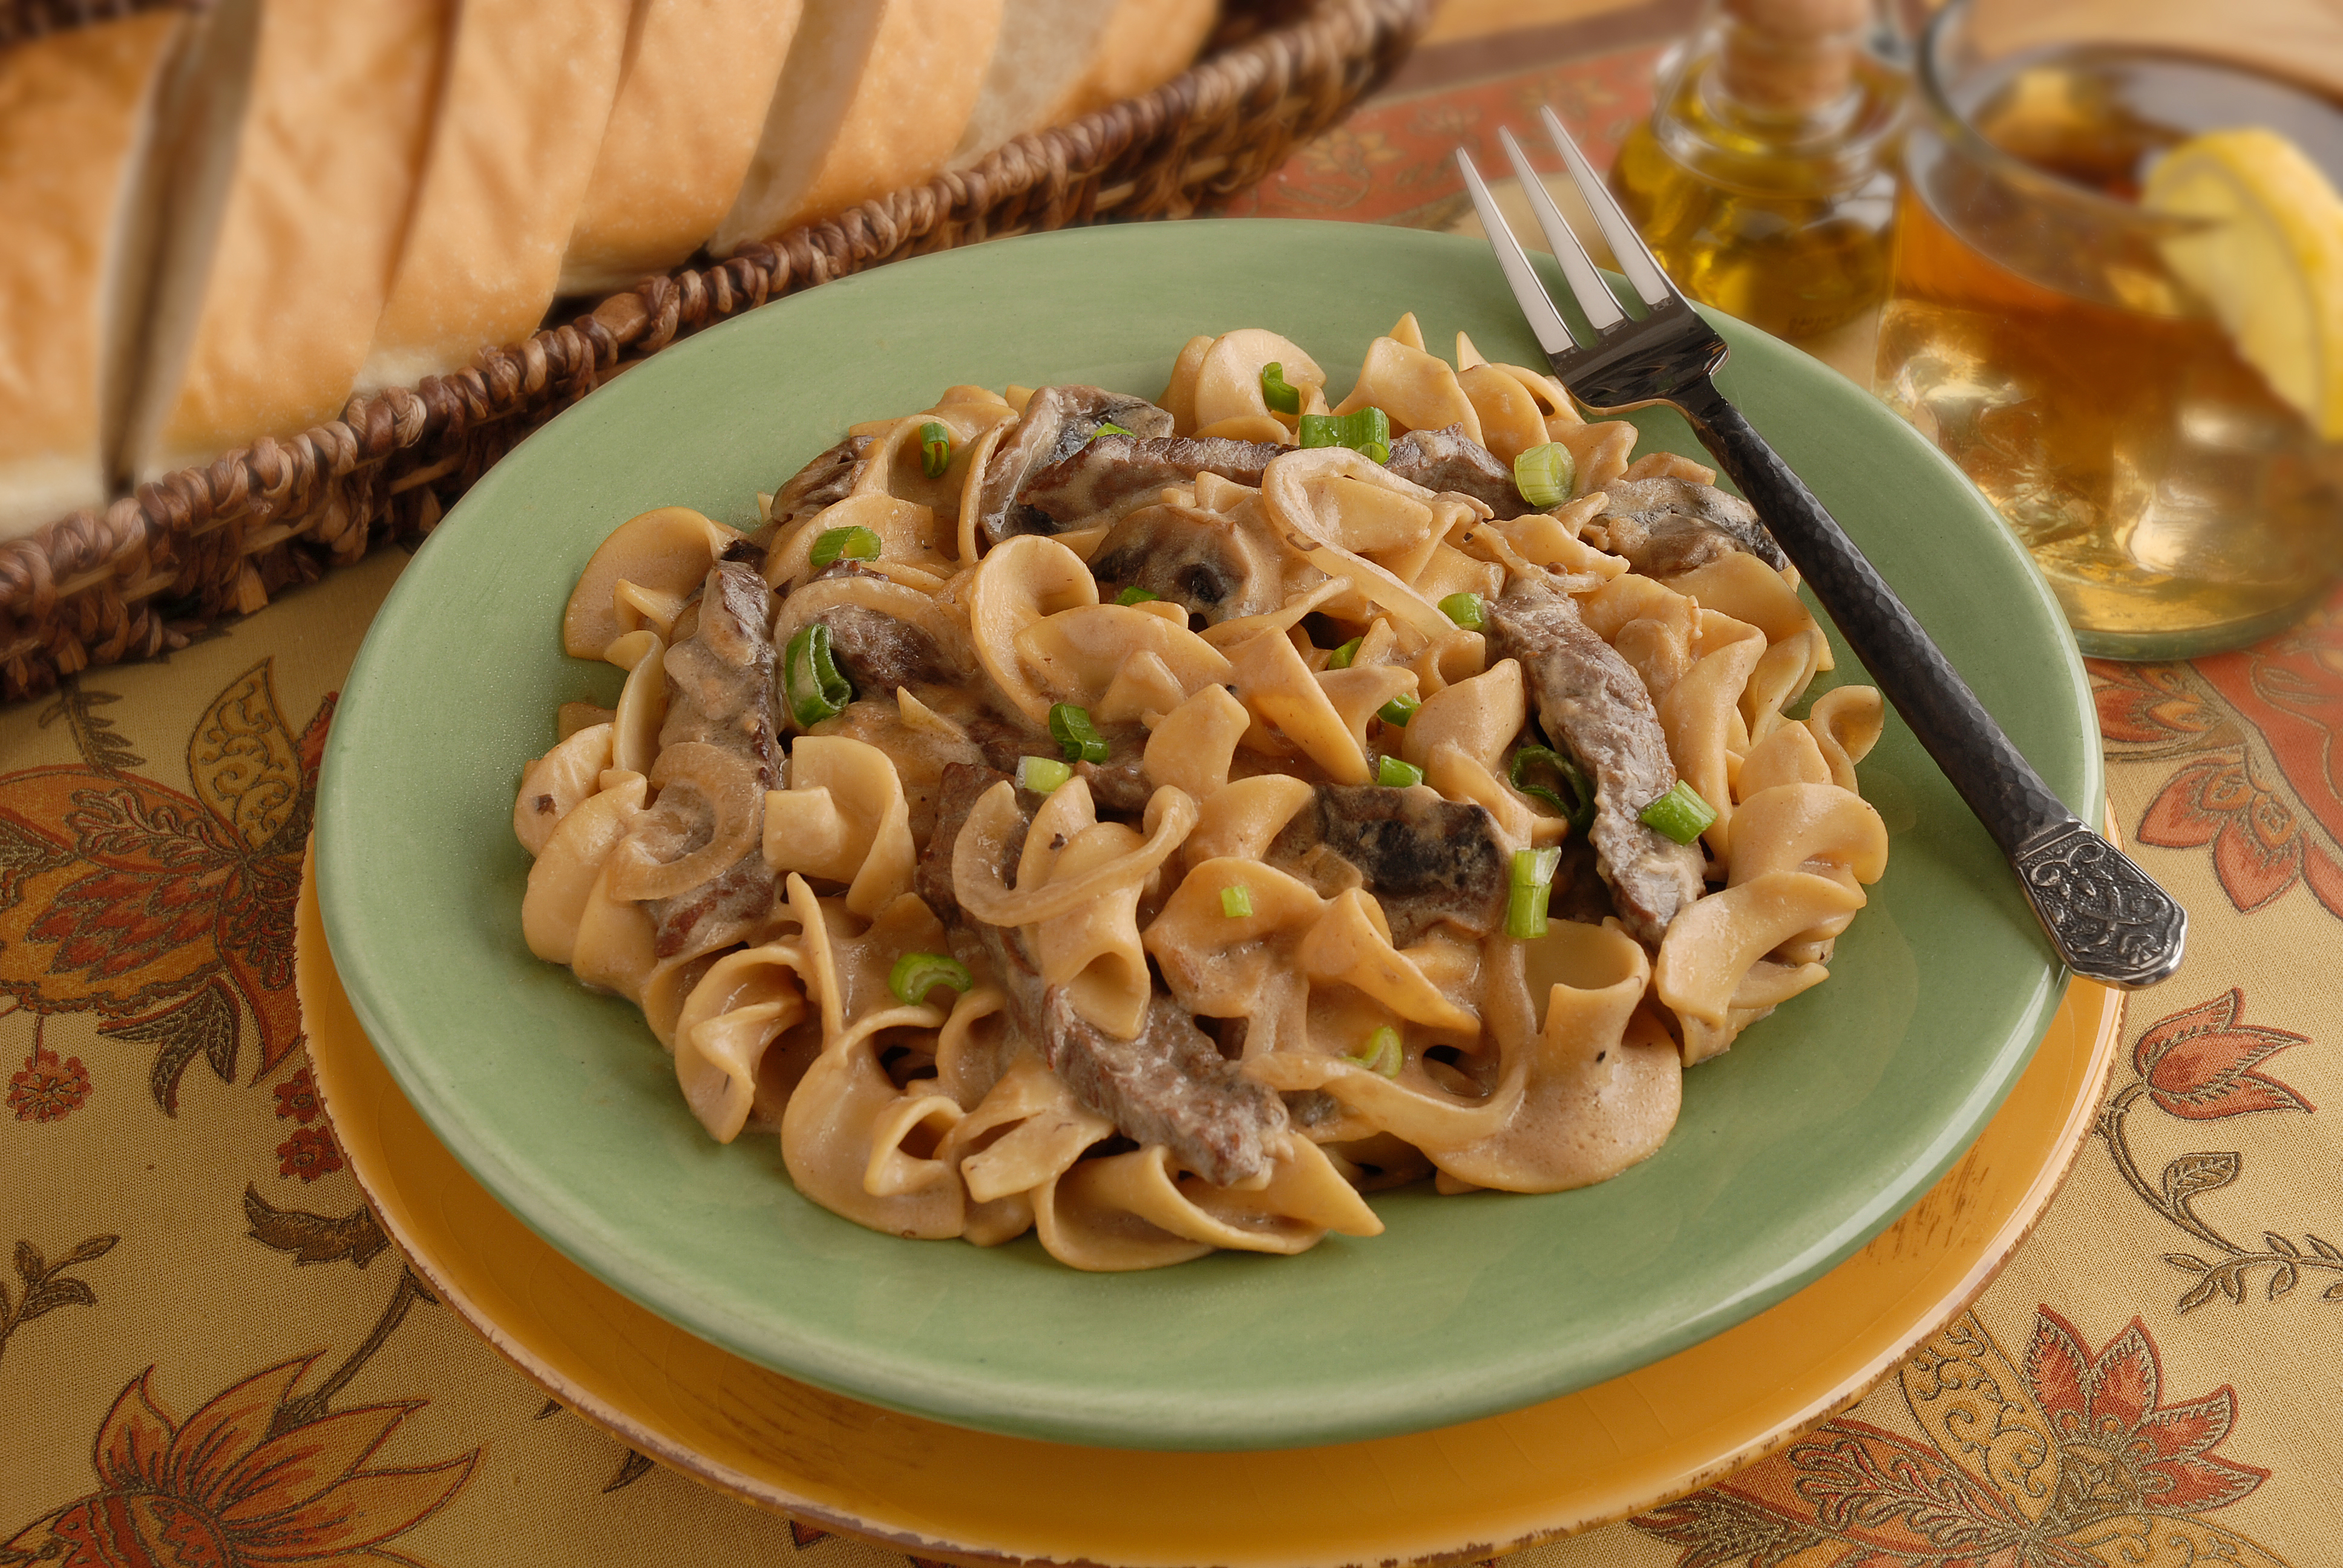 Egg noodles, beef, onions, and mushrooms in a light sauce, topped with fresh green onion